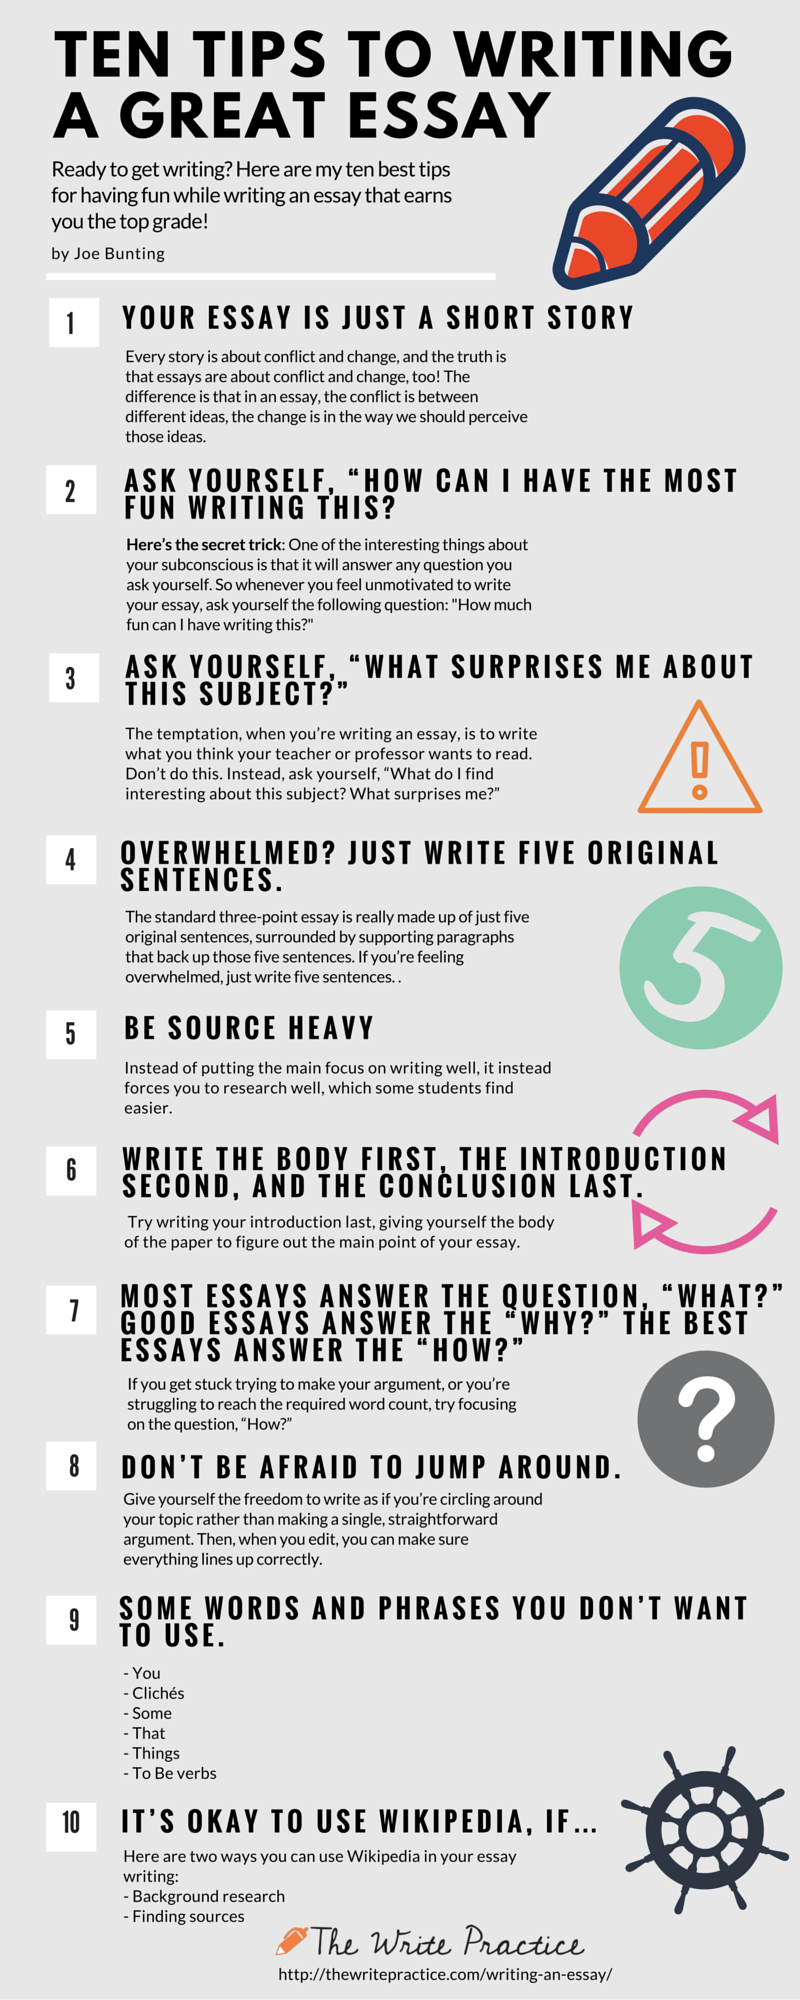 good thesis writing tips 10 tips for writing a phd thesis and help yourself by using these basic tips to make life easier good things, it turns out.